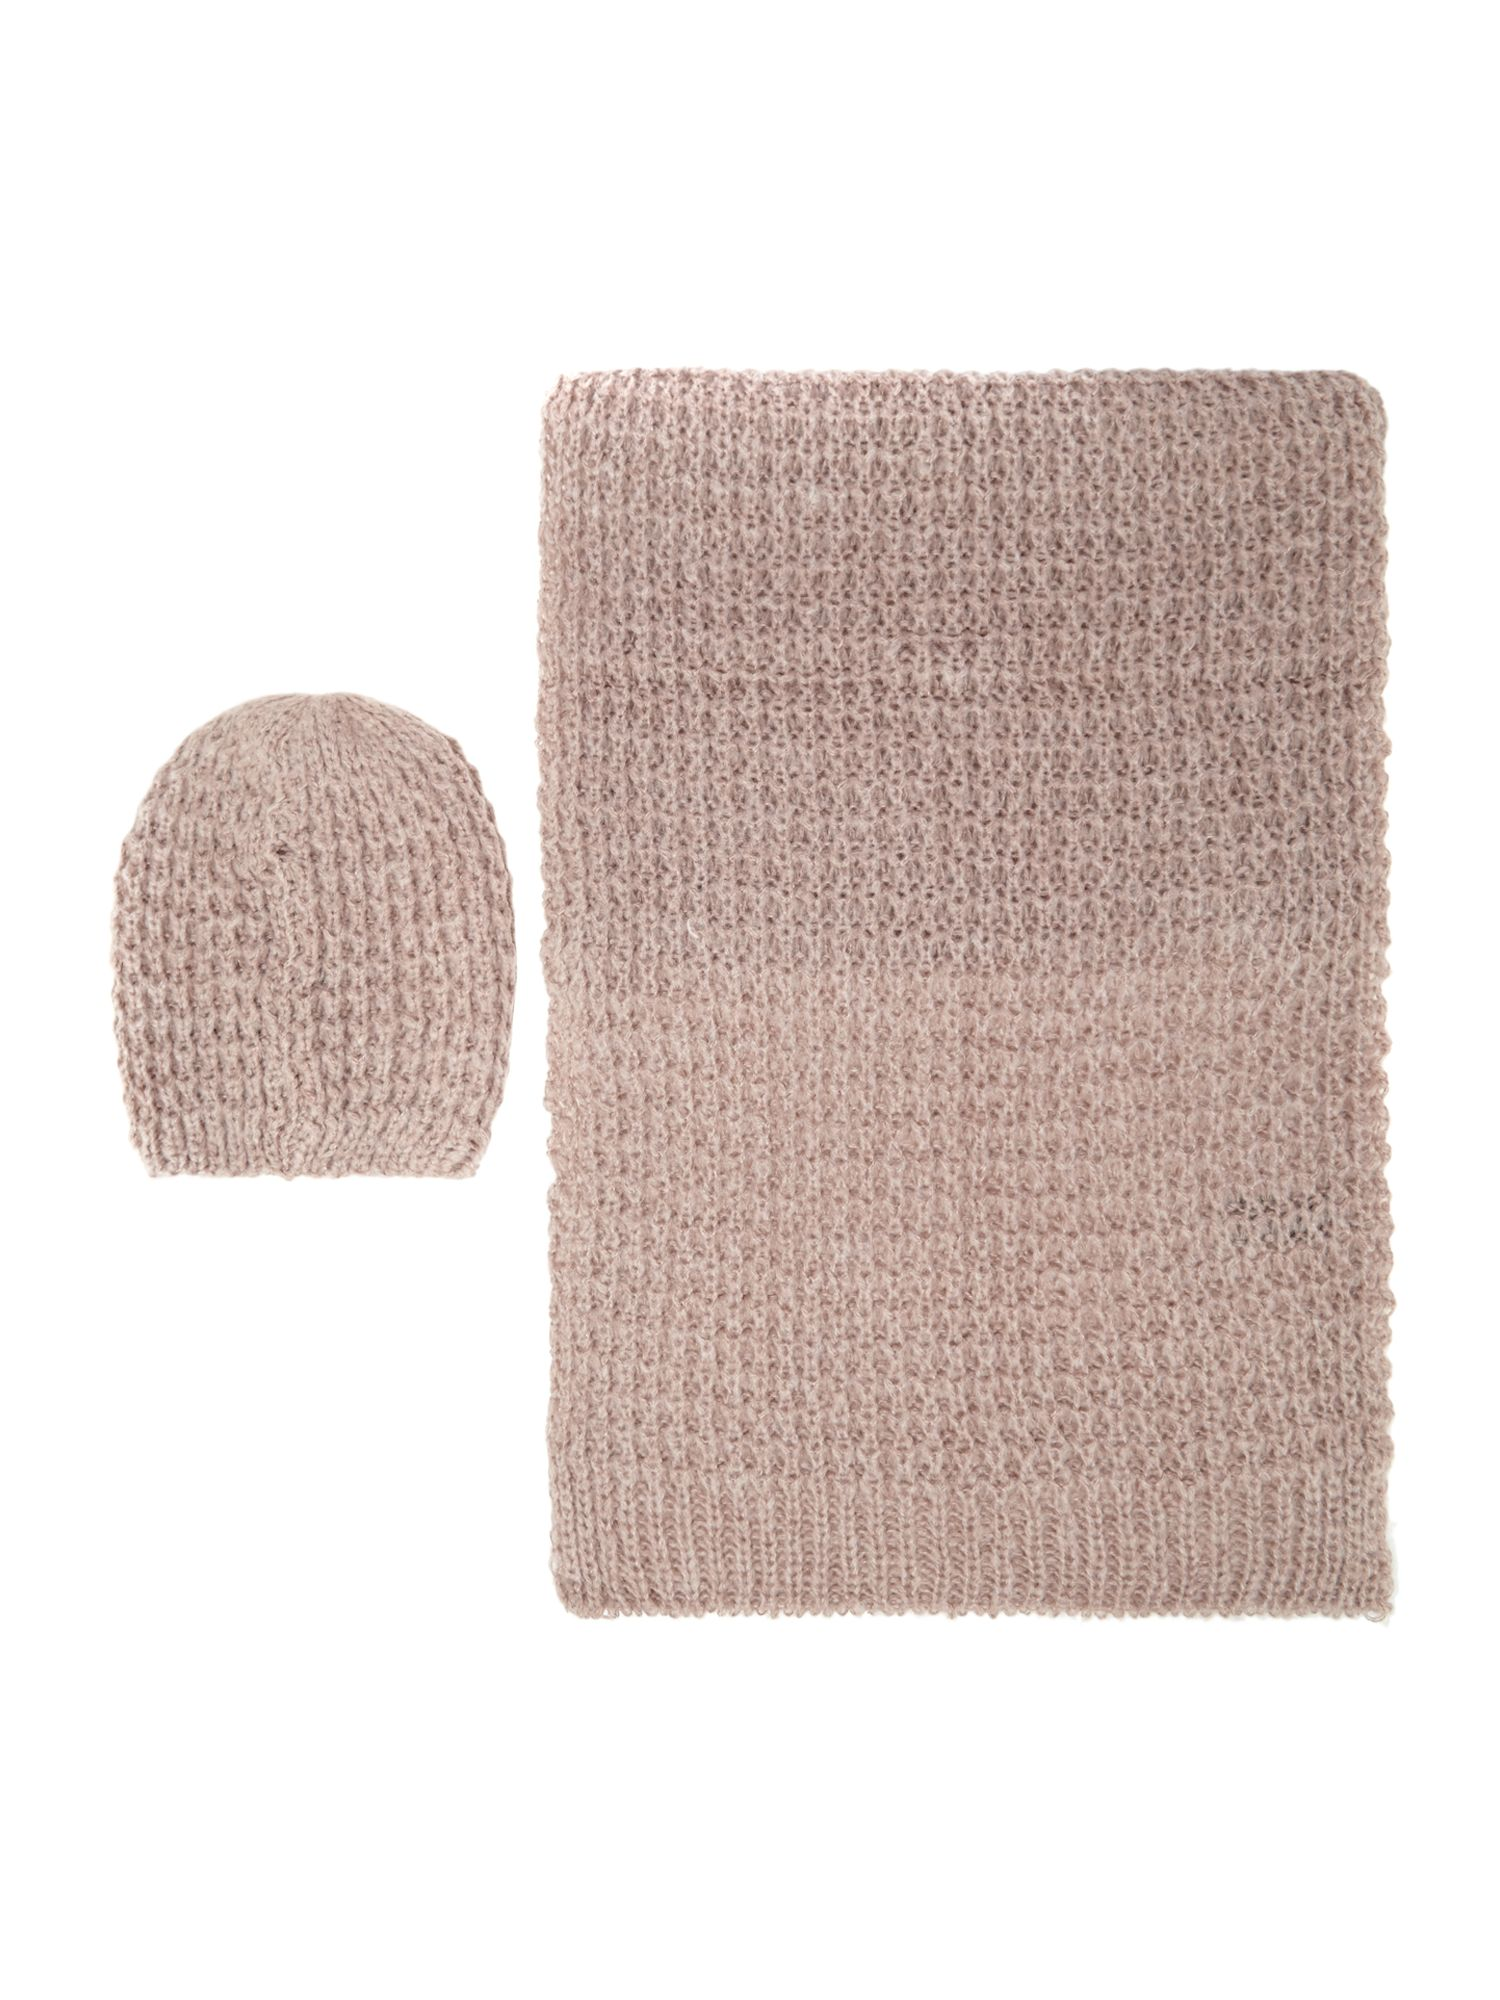 Pieces Pieces Knitted scarf and hat gift set, Rose